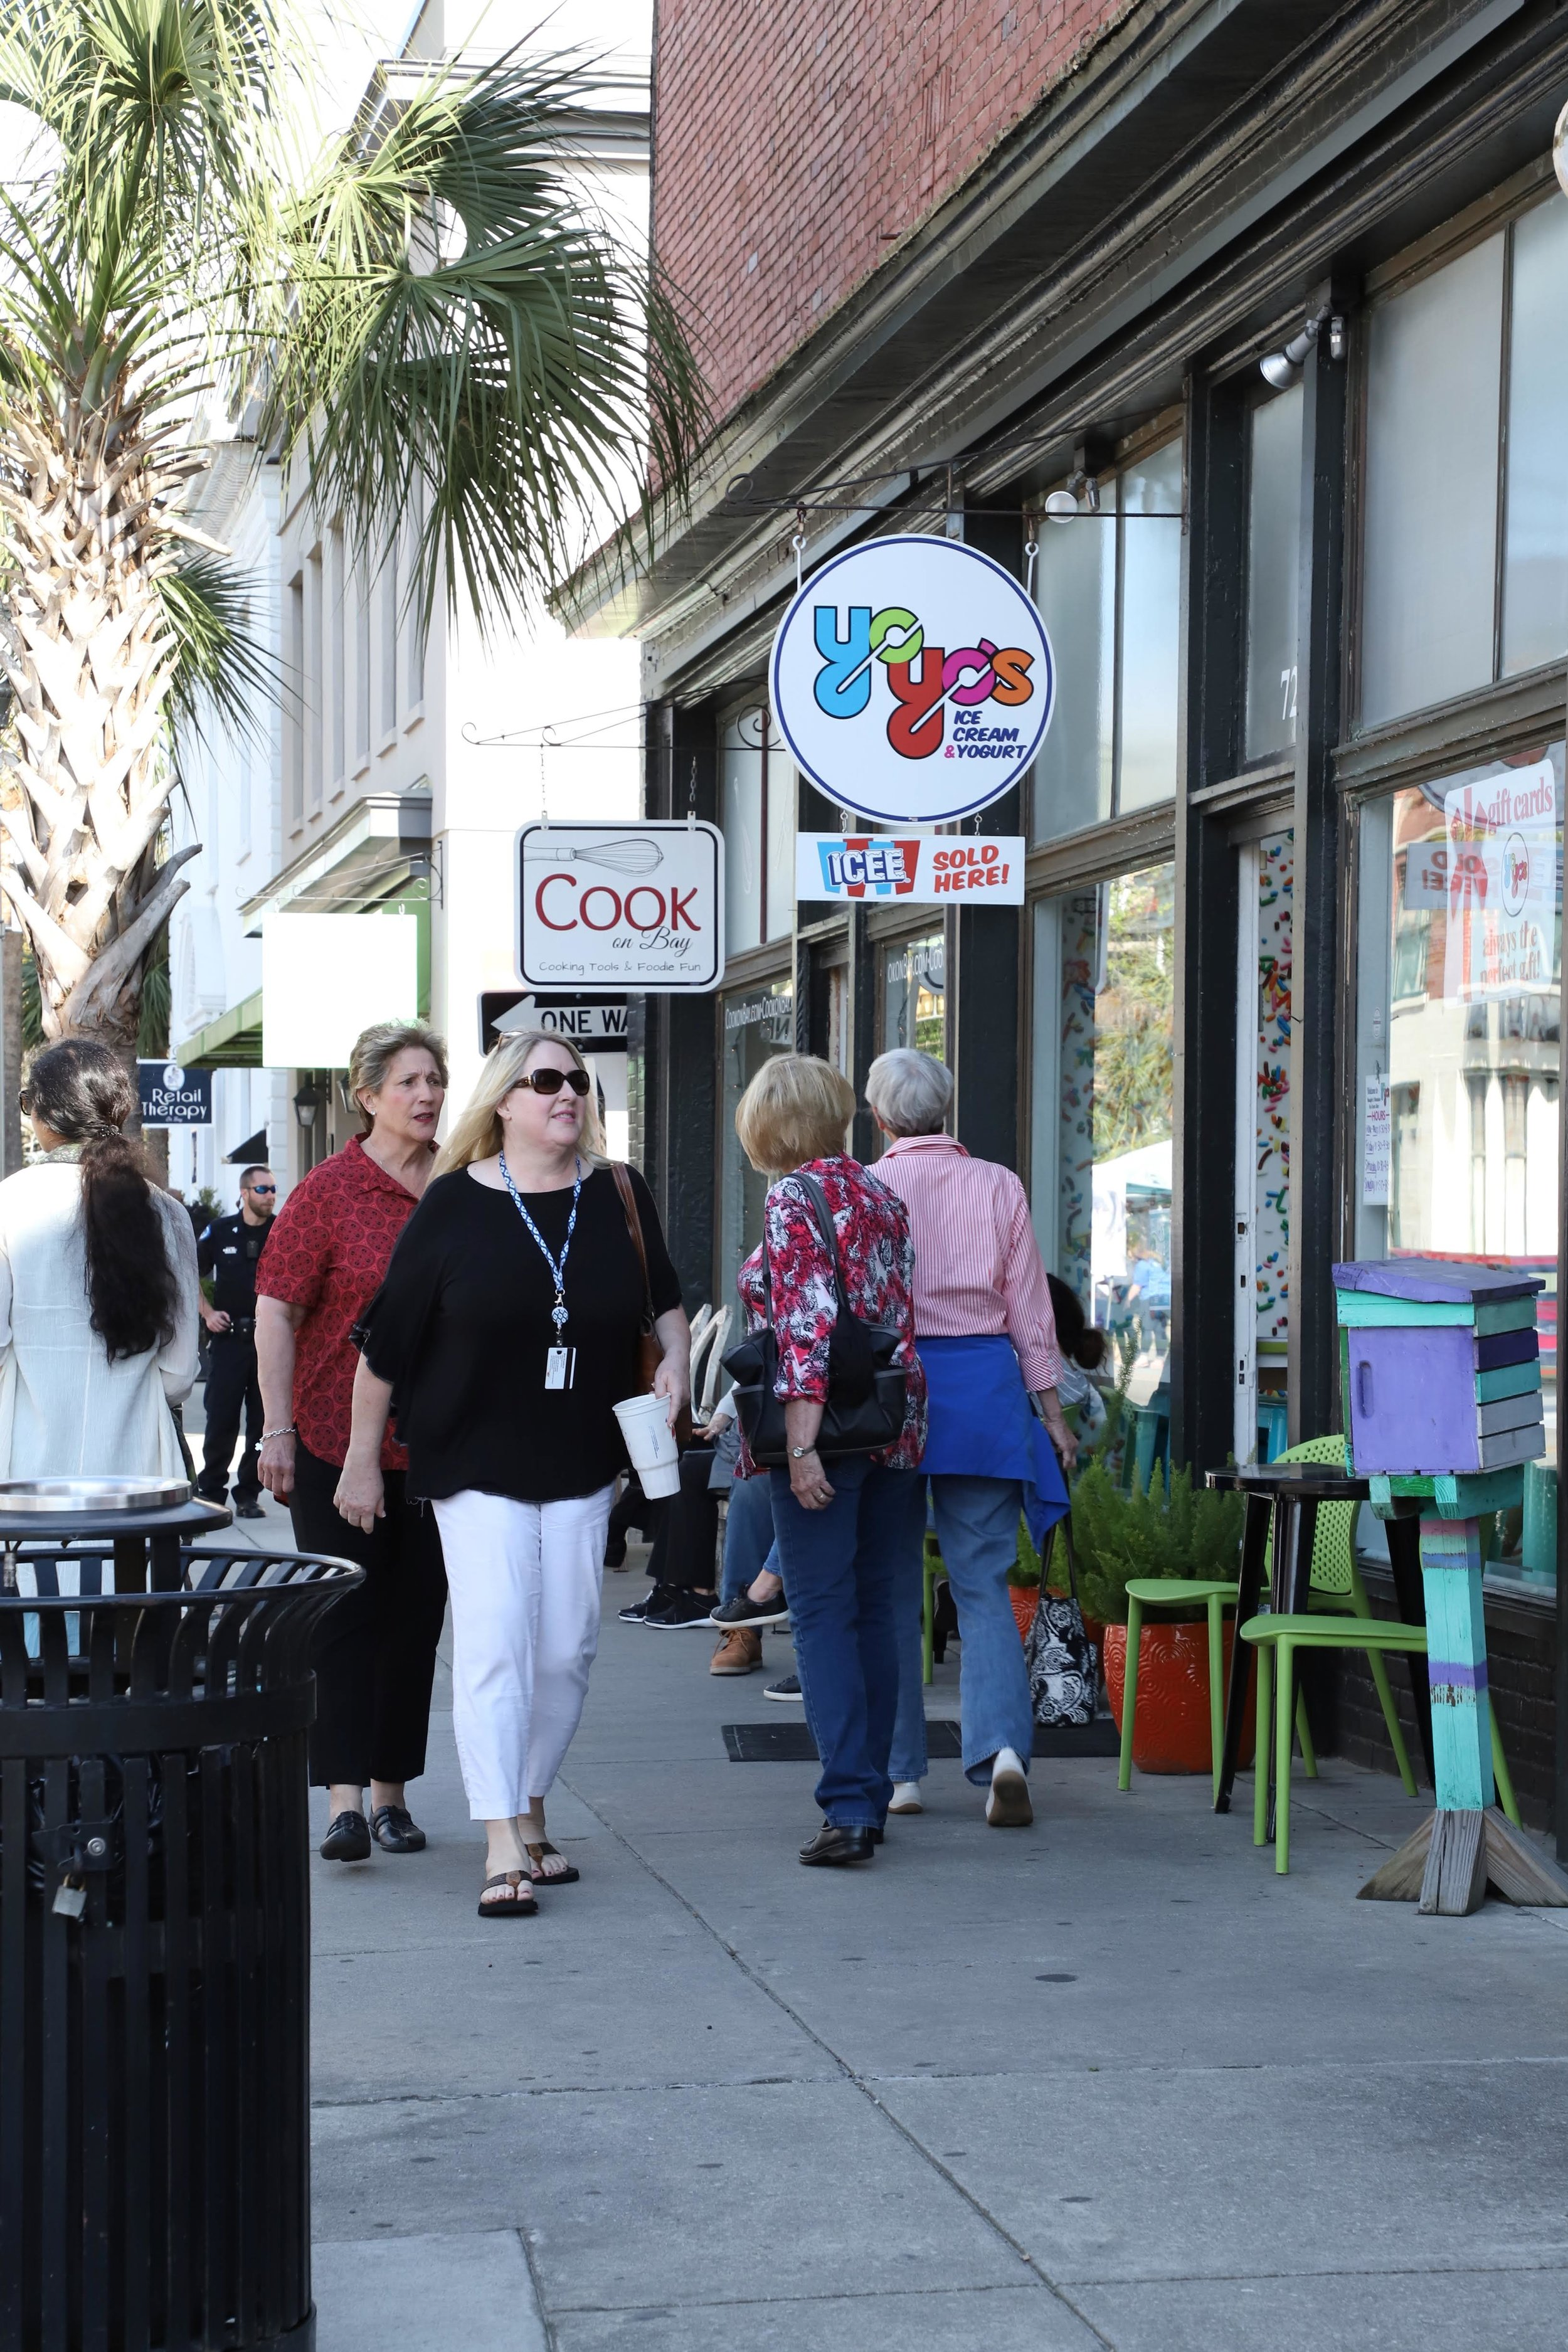 Strolling along the stores in Downtown Beaufort, SC